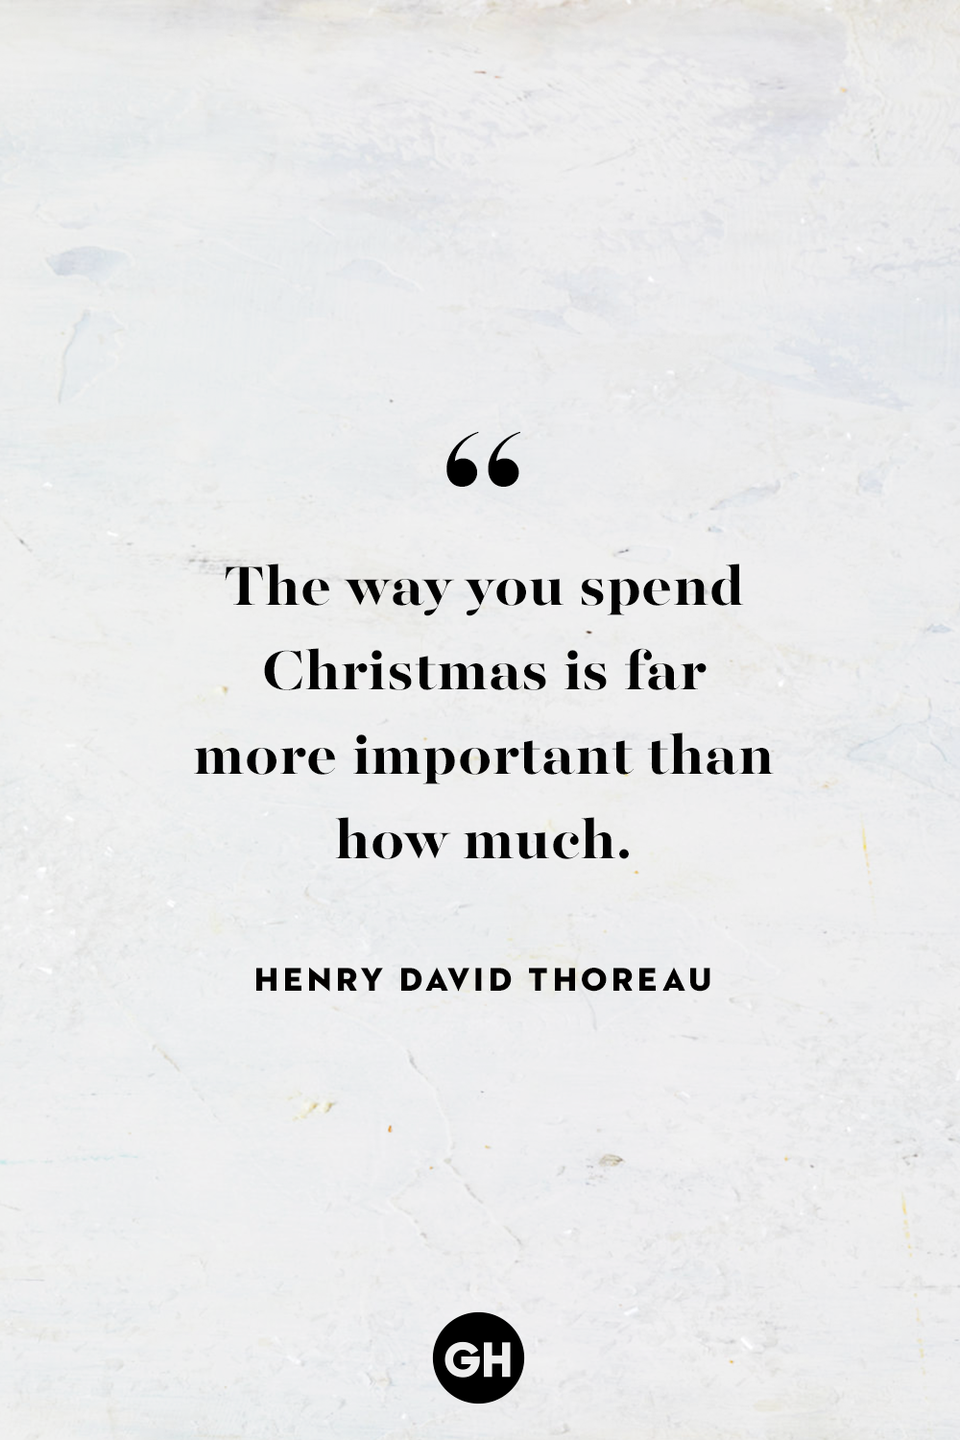 <p>The way you spend Christmas is far more important than how much.</p>